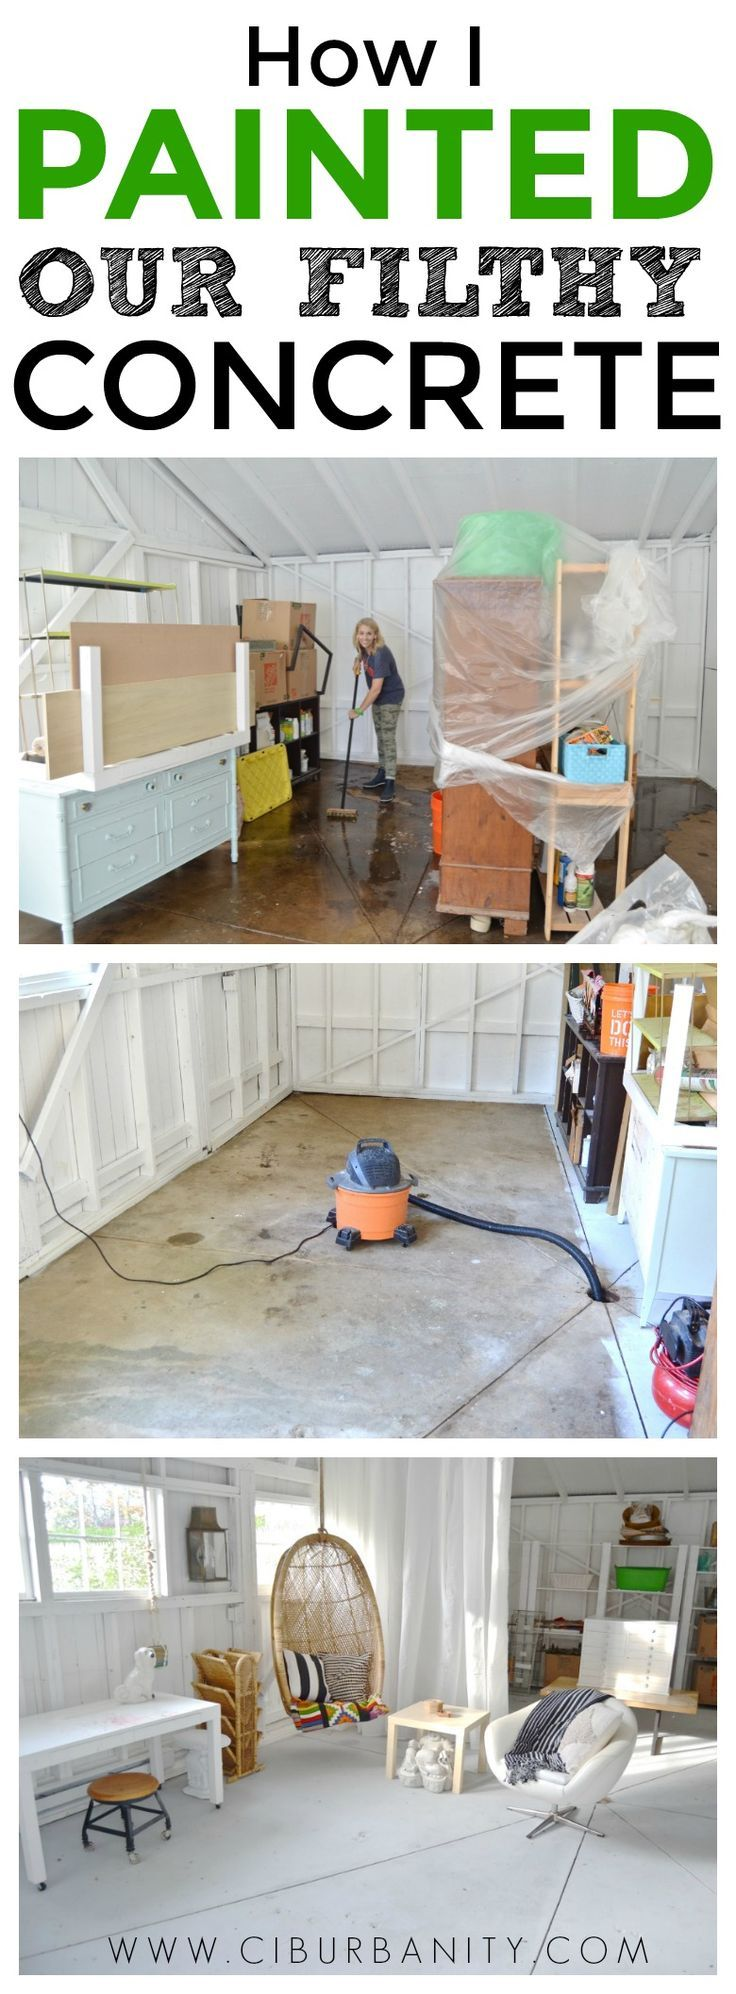 how to paint filthy concrete floors with only three small cans of paint